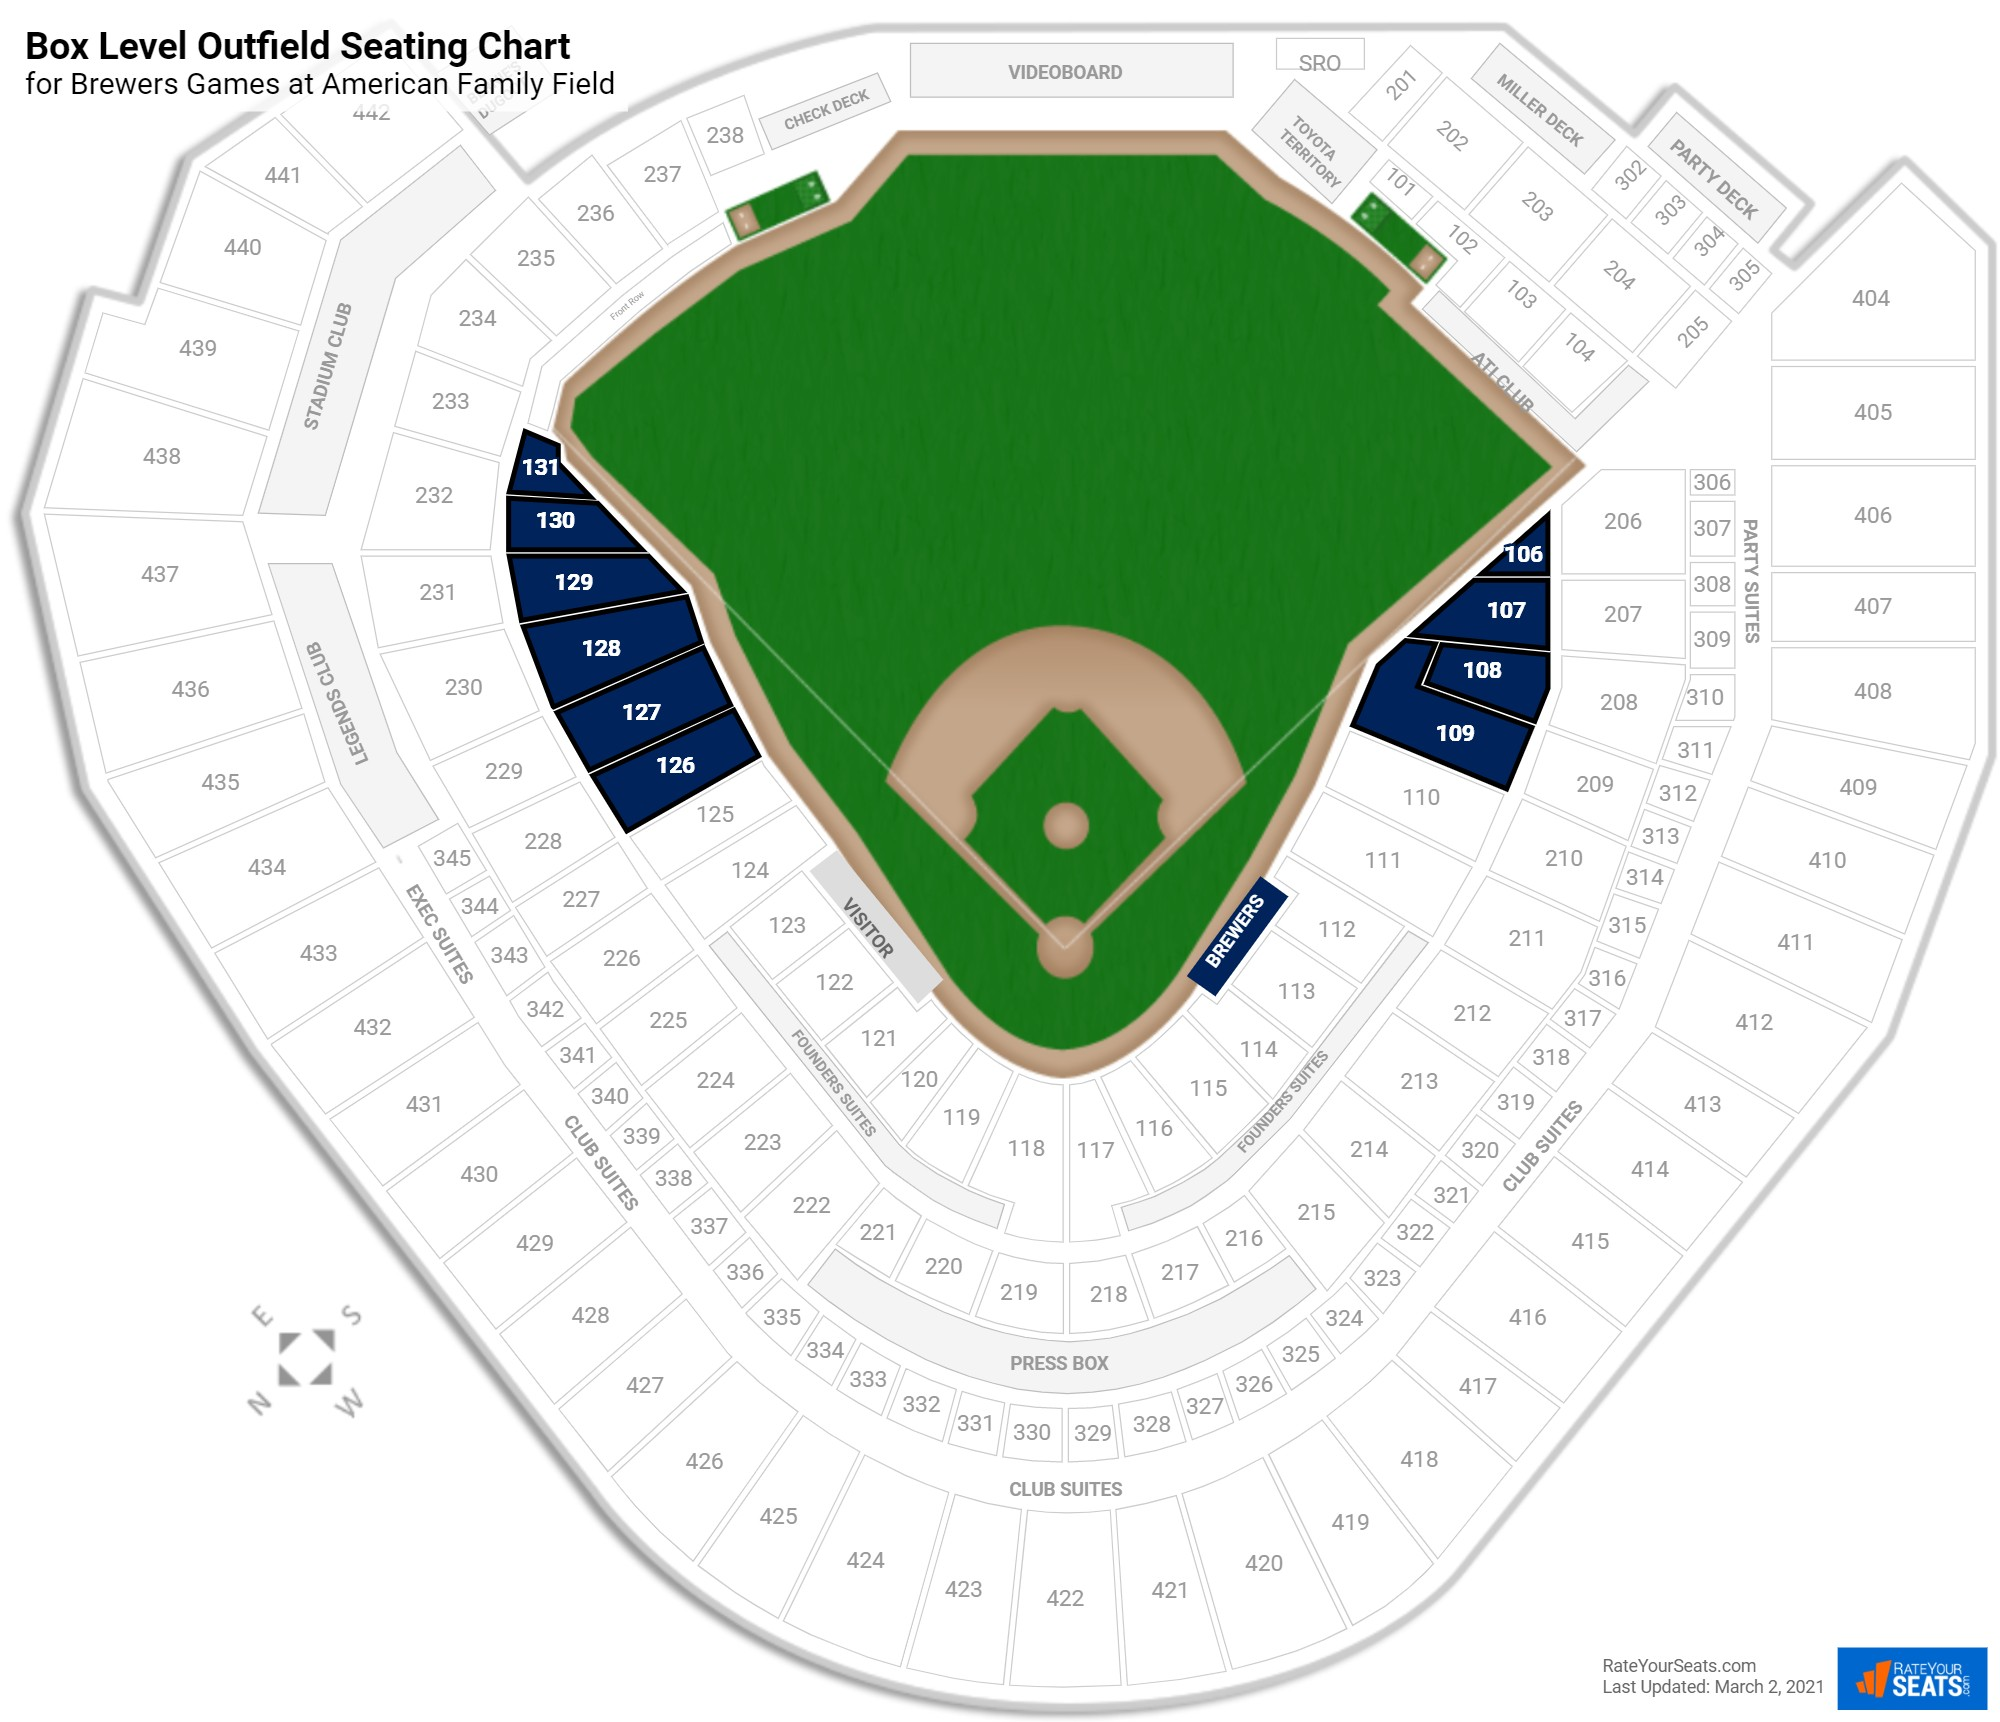 Miller Park Box Level Outfield seating chart